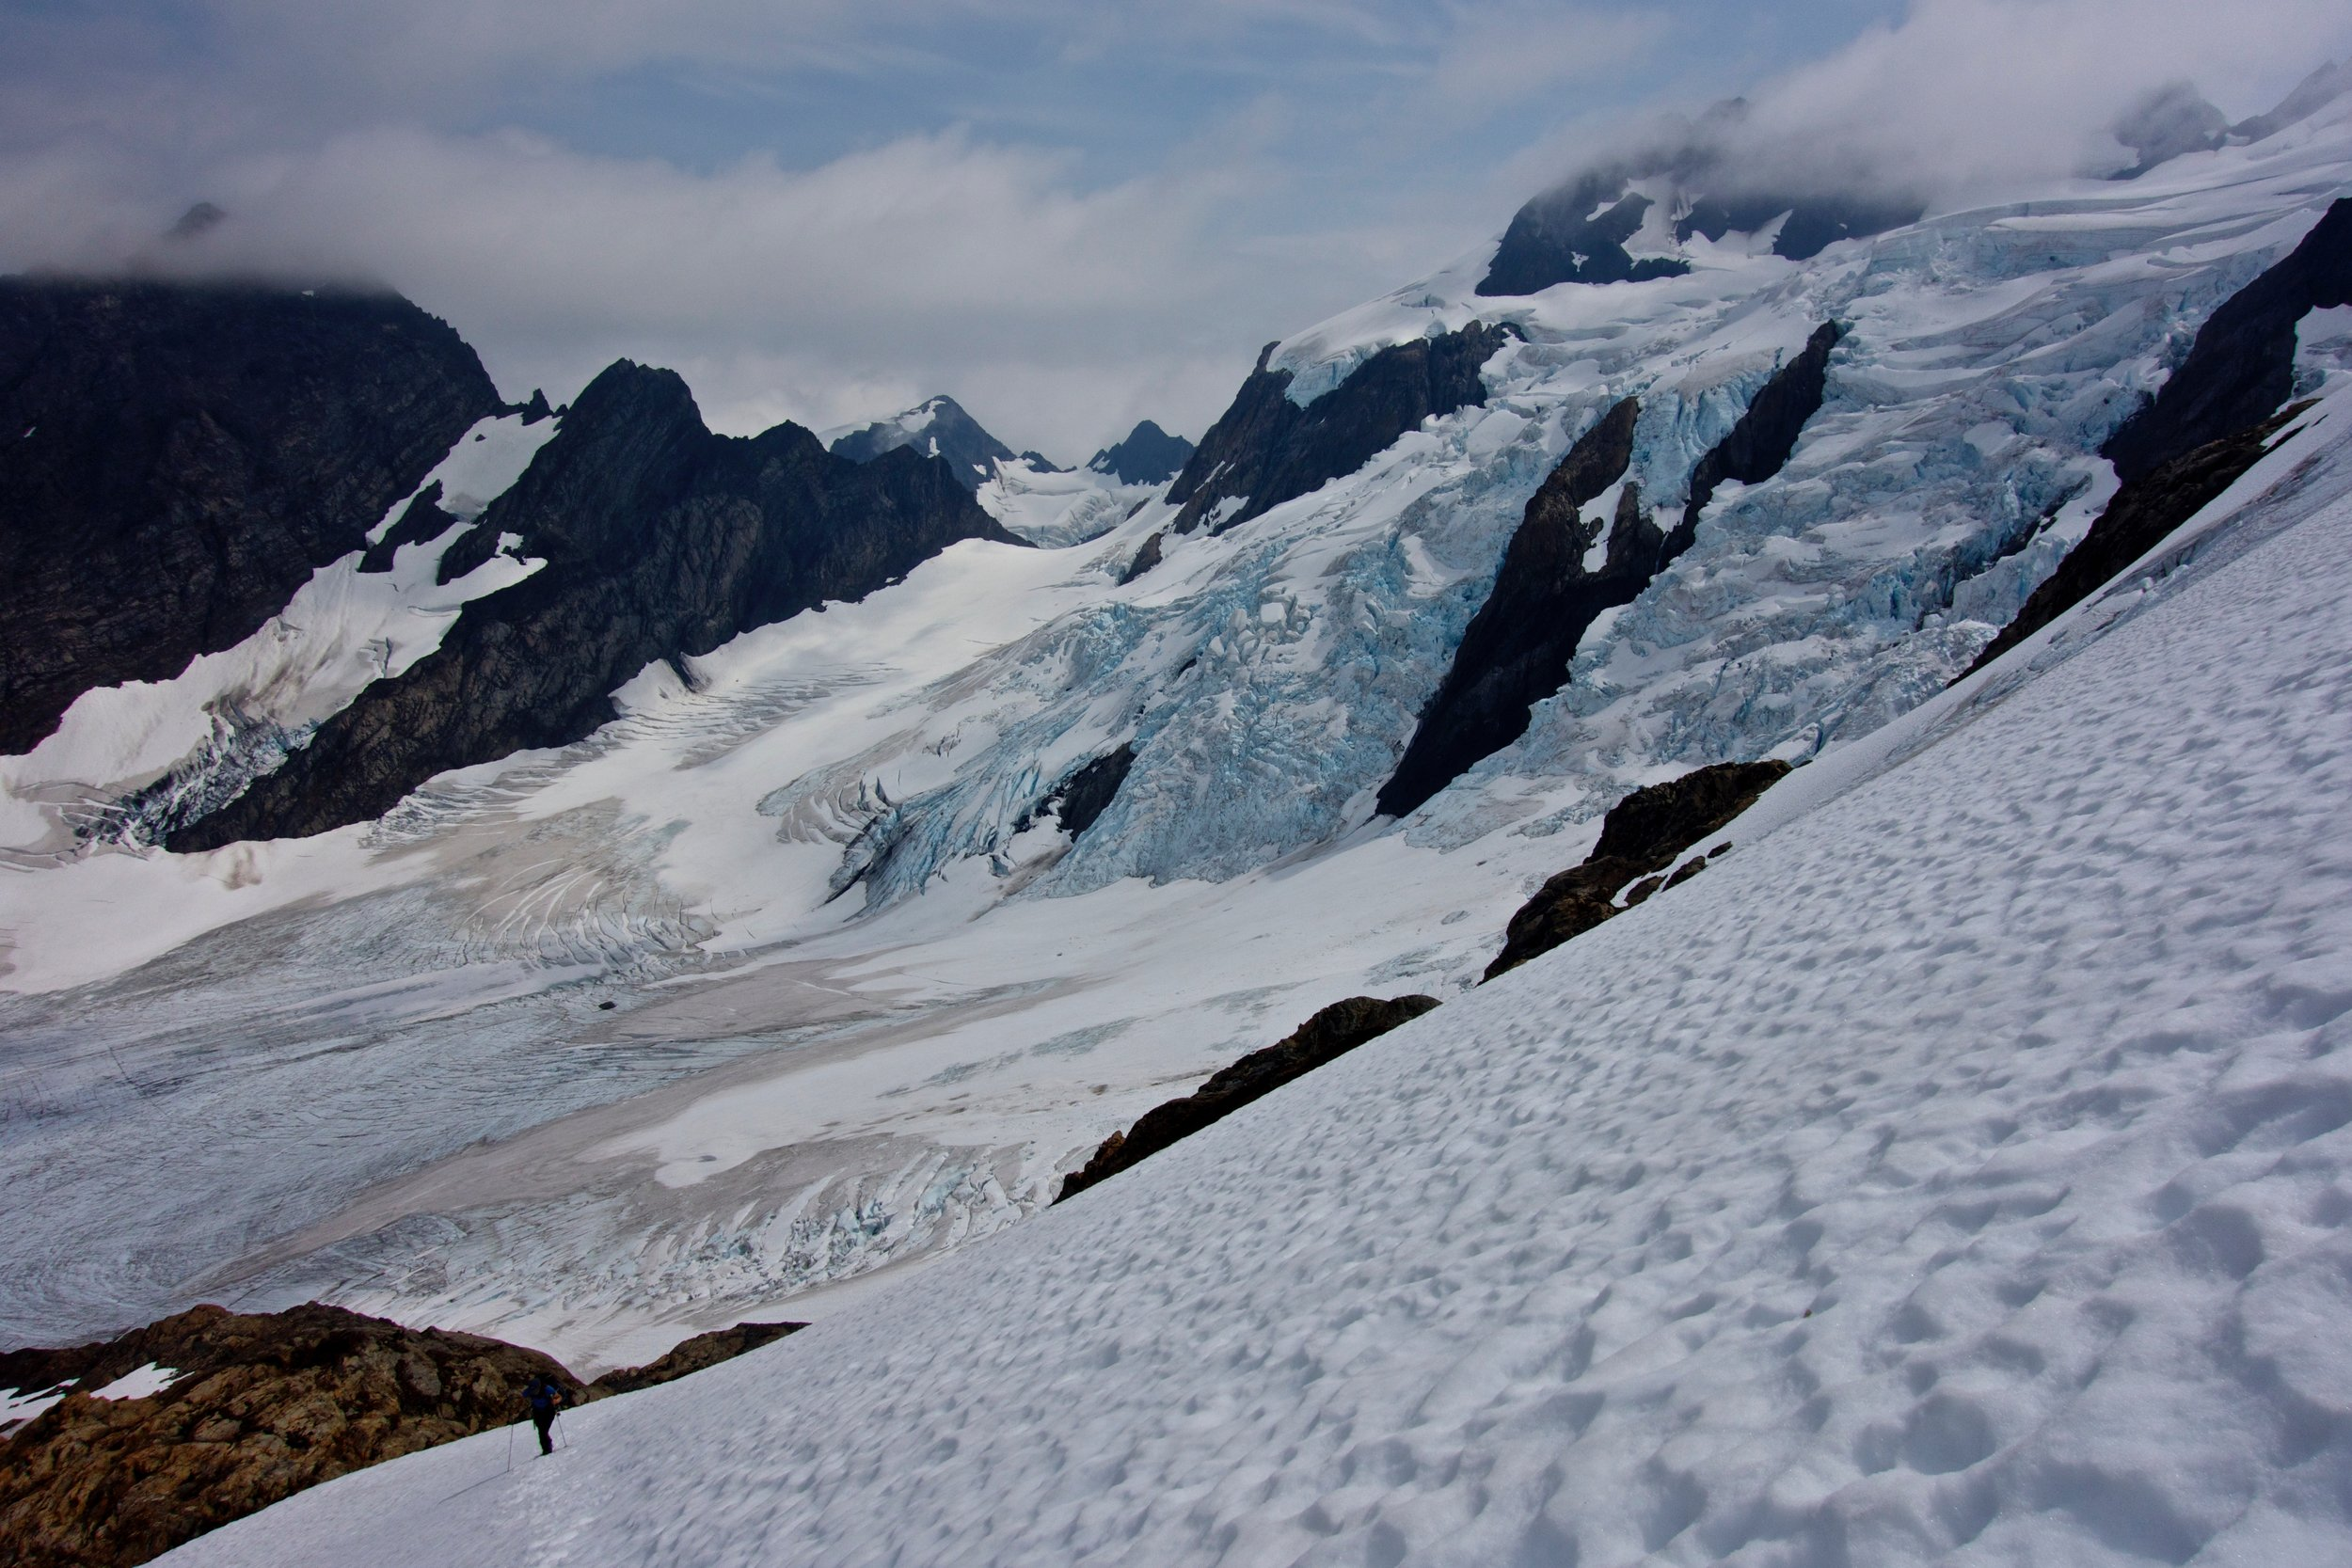 Ascending the Snow Dome, with the Blue Glacier behind